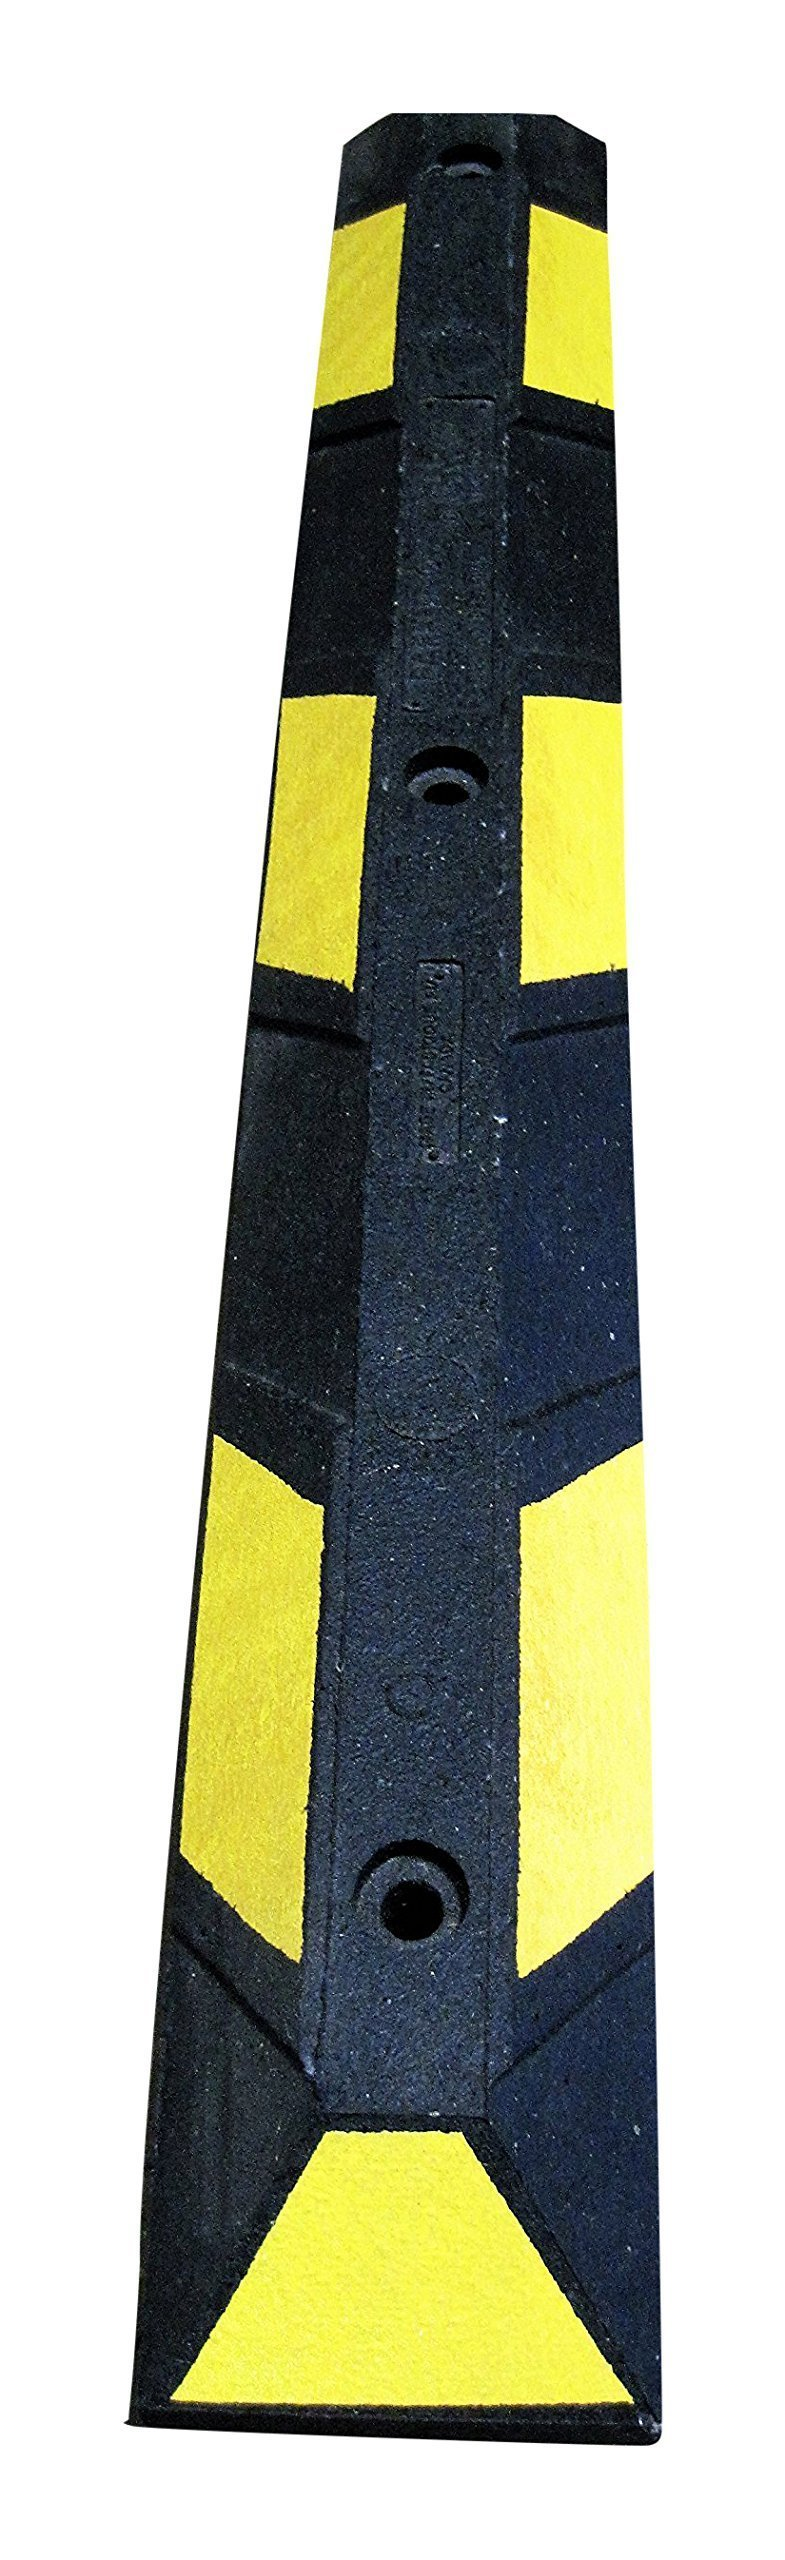 Parking Curb 36 inch Long Rubber Block Wheel Stop for Car, RV, Trailer, Garage, Driveway or Parking Lot (Black with Yellow Reflective Stripes)